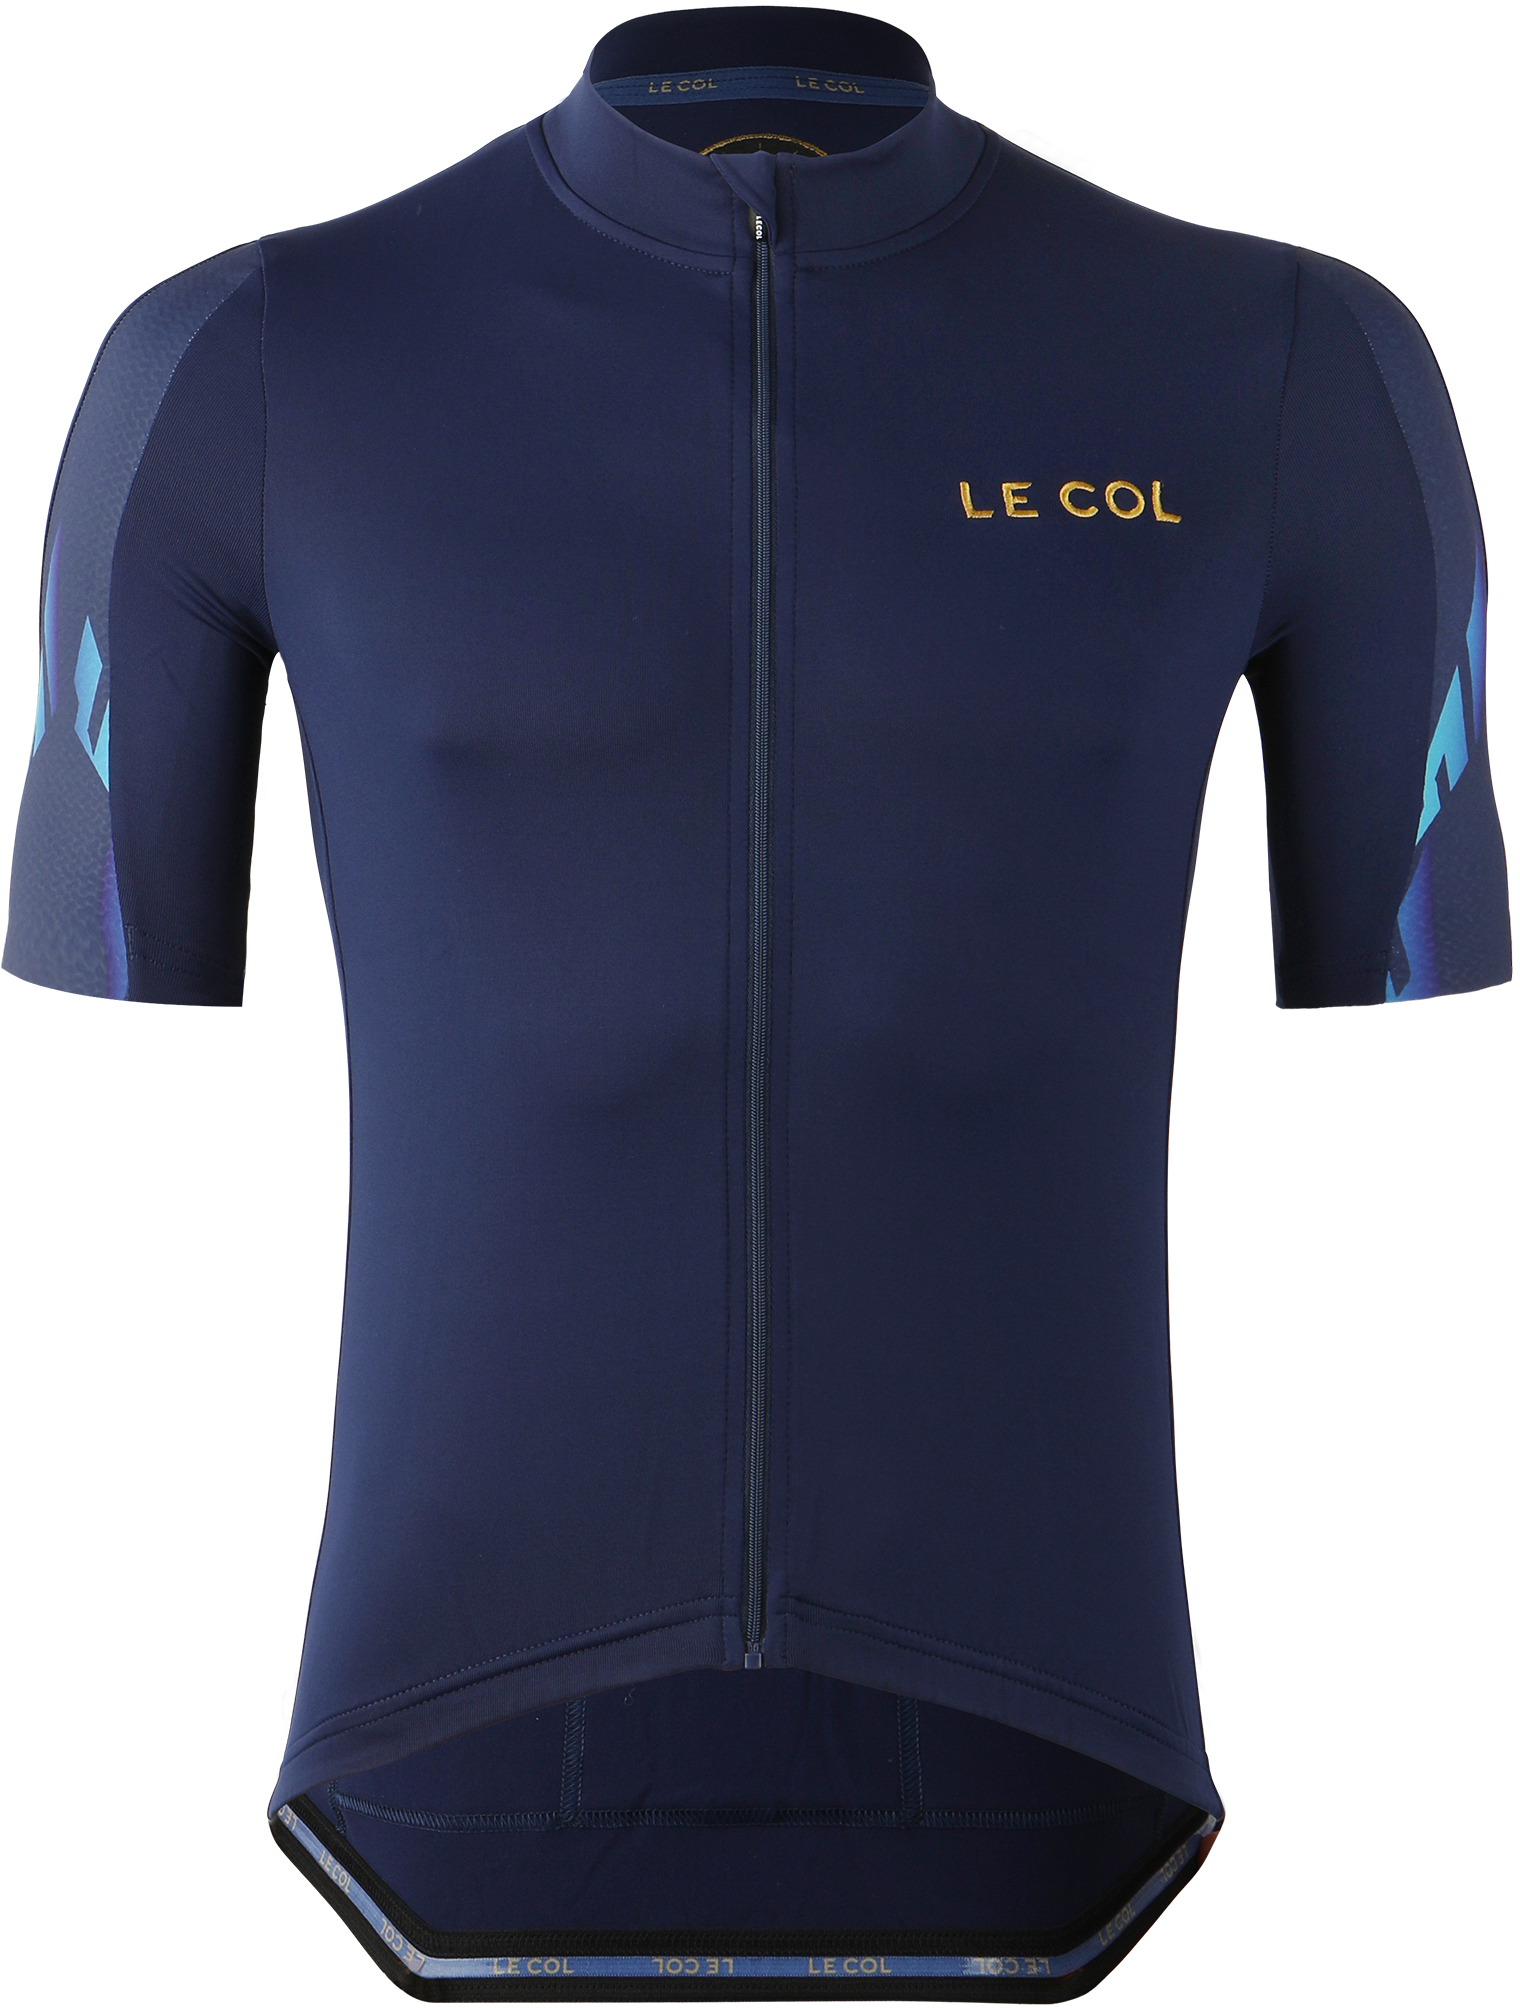 Le Col Exclusive Hors Categorie Jersey | Jerseys